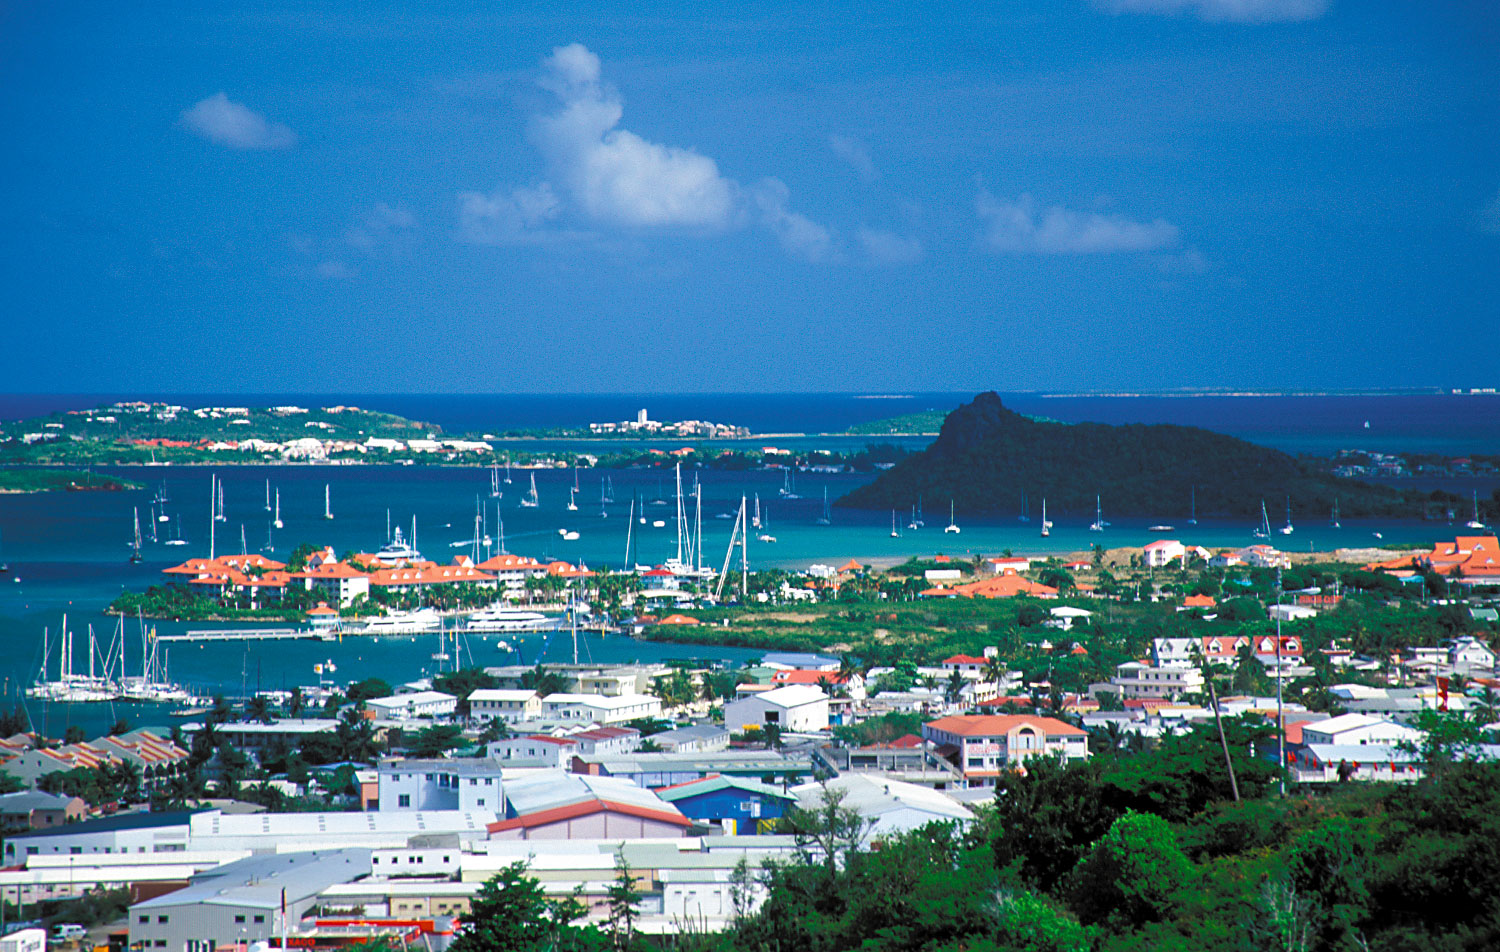 The view over Simpson's Bay Lagoon, bisected by the Dutch-French border. Photograph by Donald Nausbaum